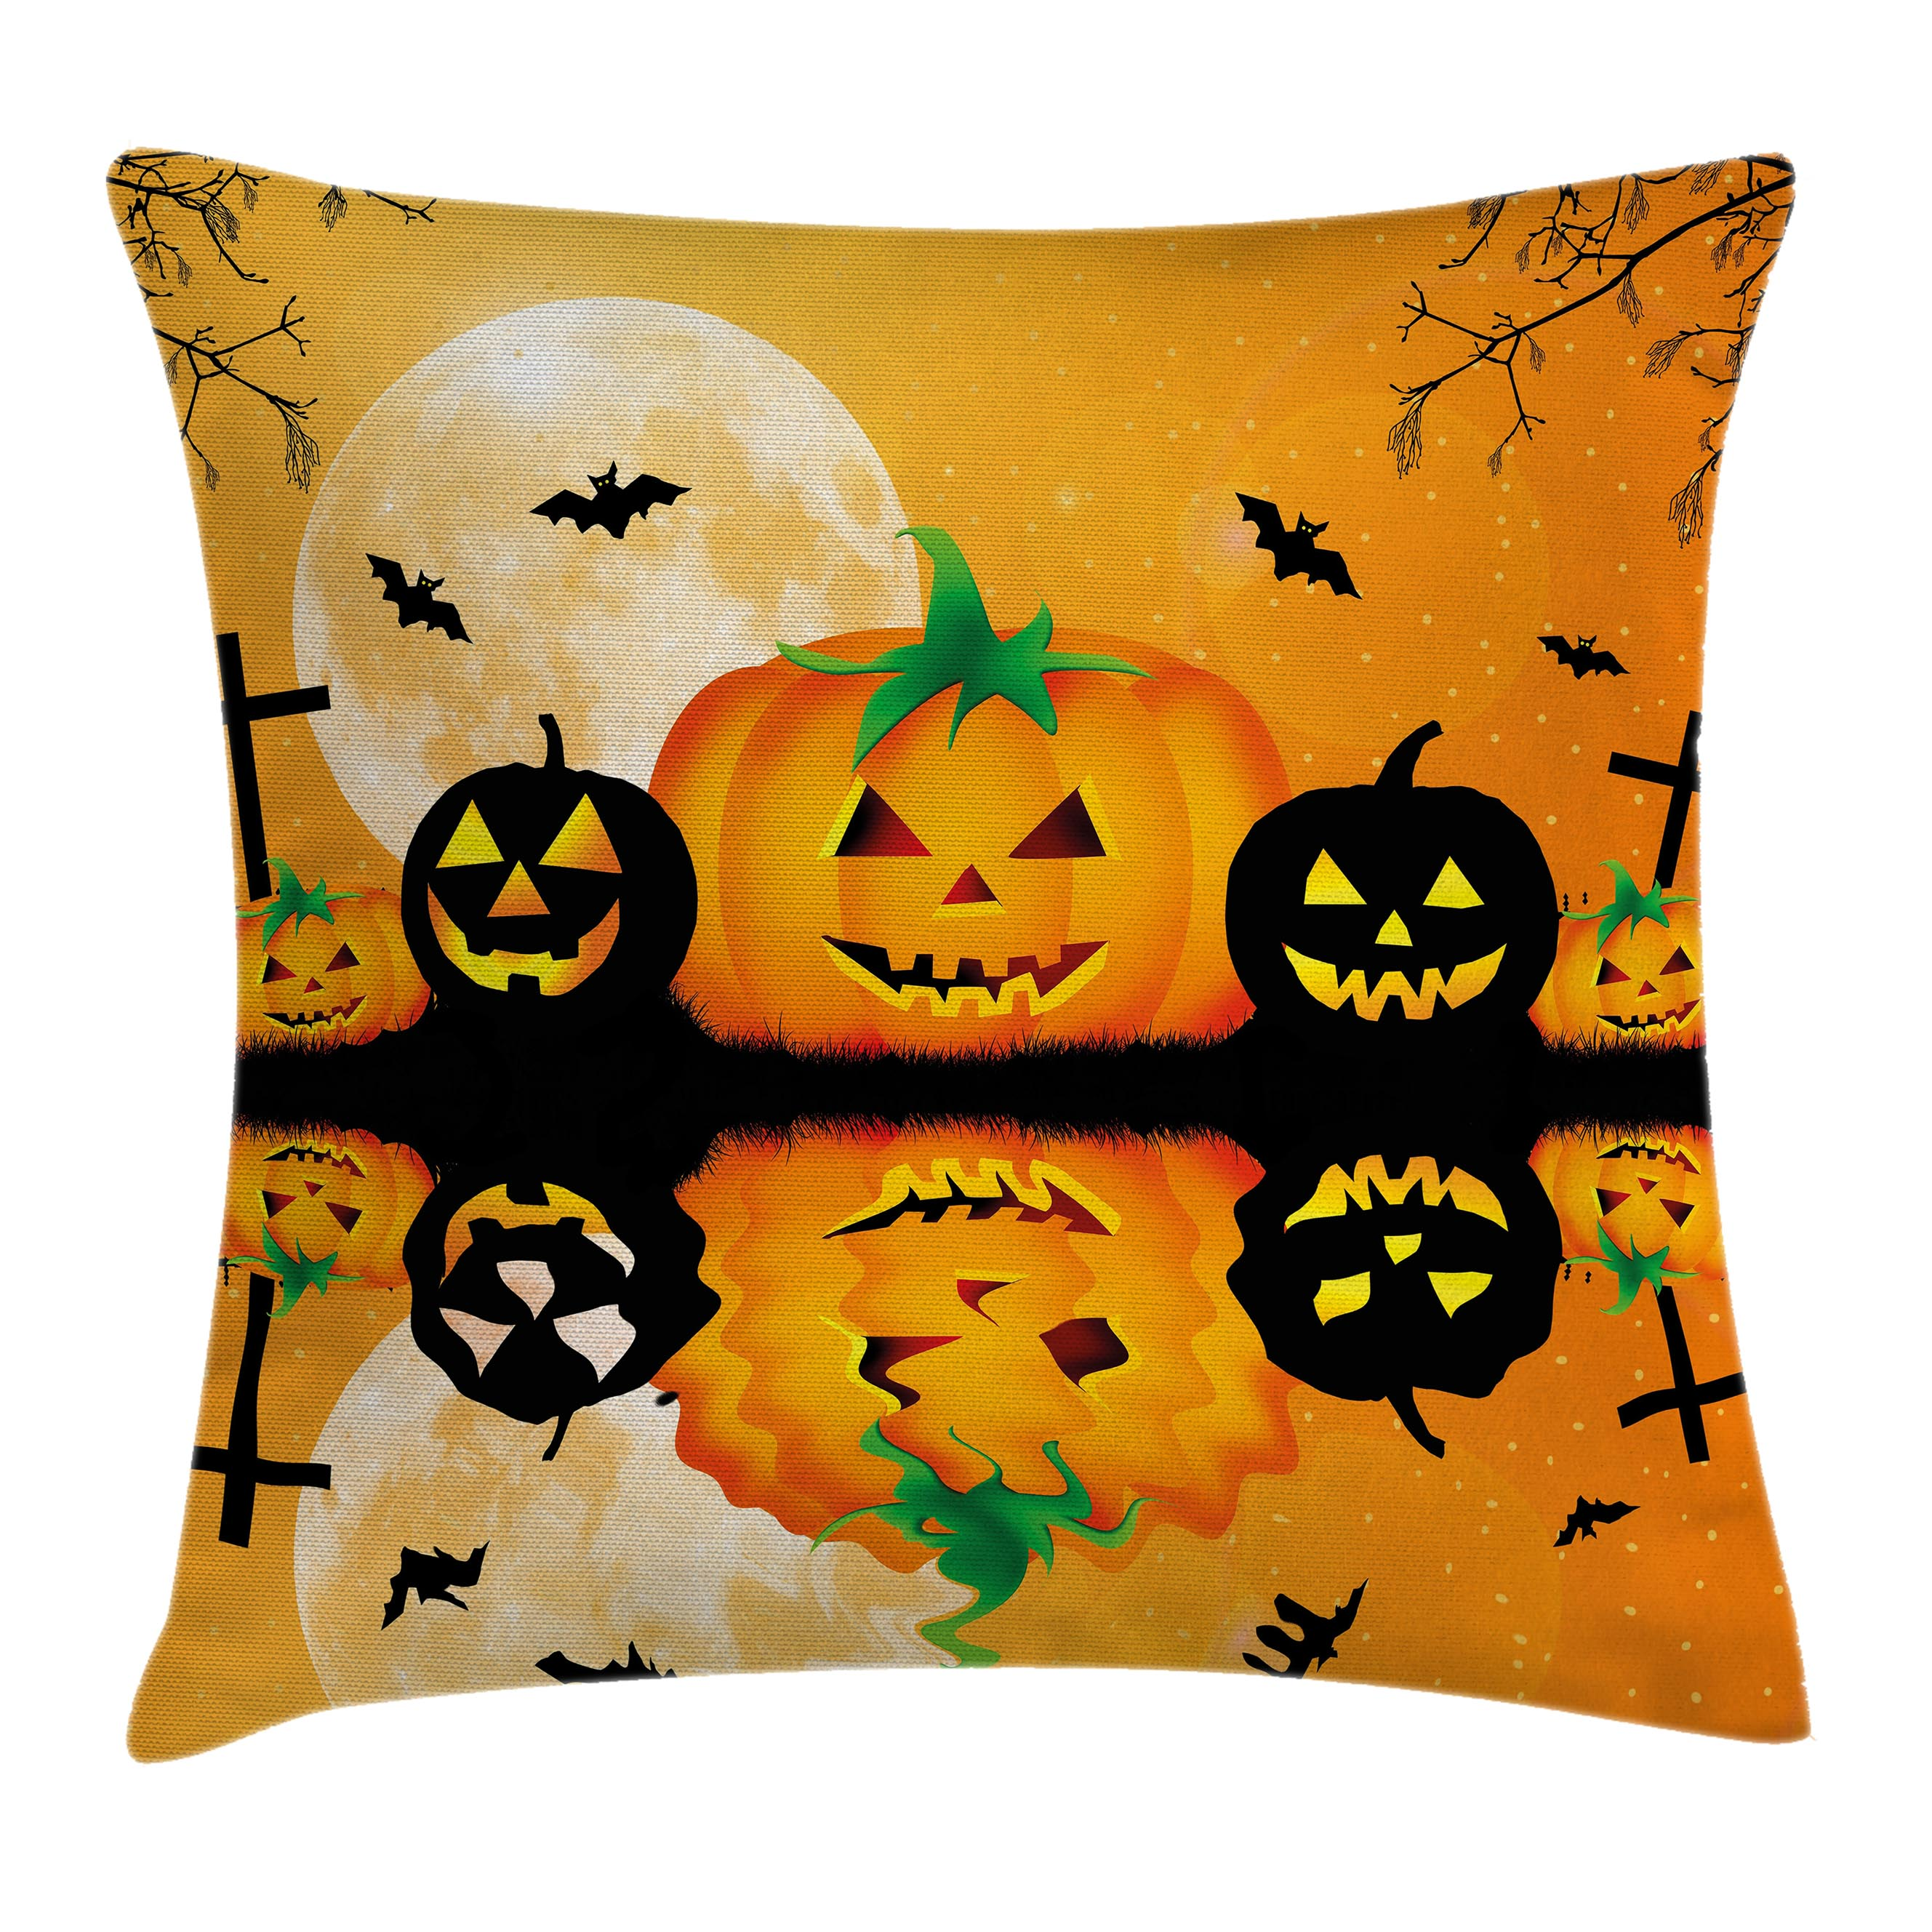 Halloween Decorations Throw Pillow Cushion Cover, Spooky Carved Halloween Pumpkin Full Moon with Bats and Grave Lake, Decorative Square Accent Pillow Case, 20 X 20 Inches, Orange Black, by Ambesonne